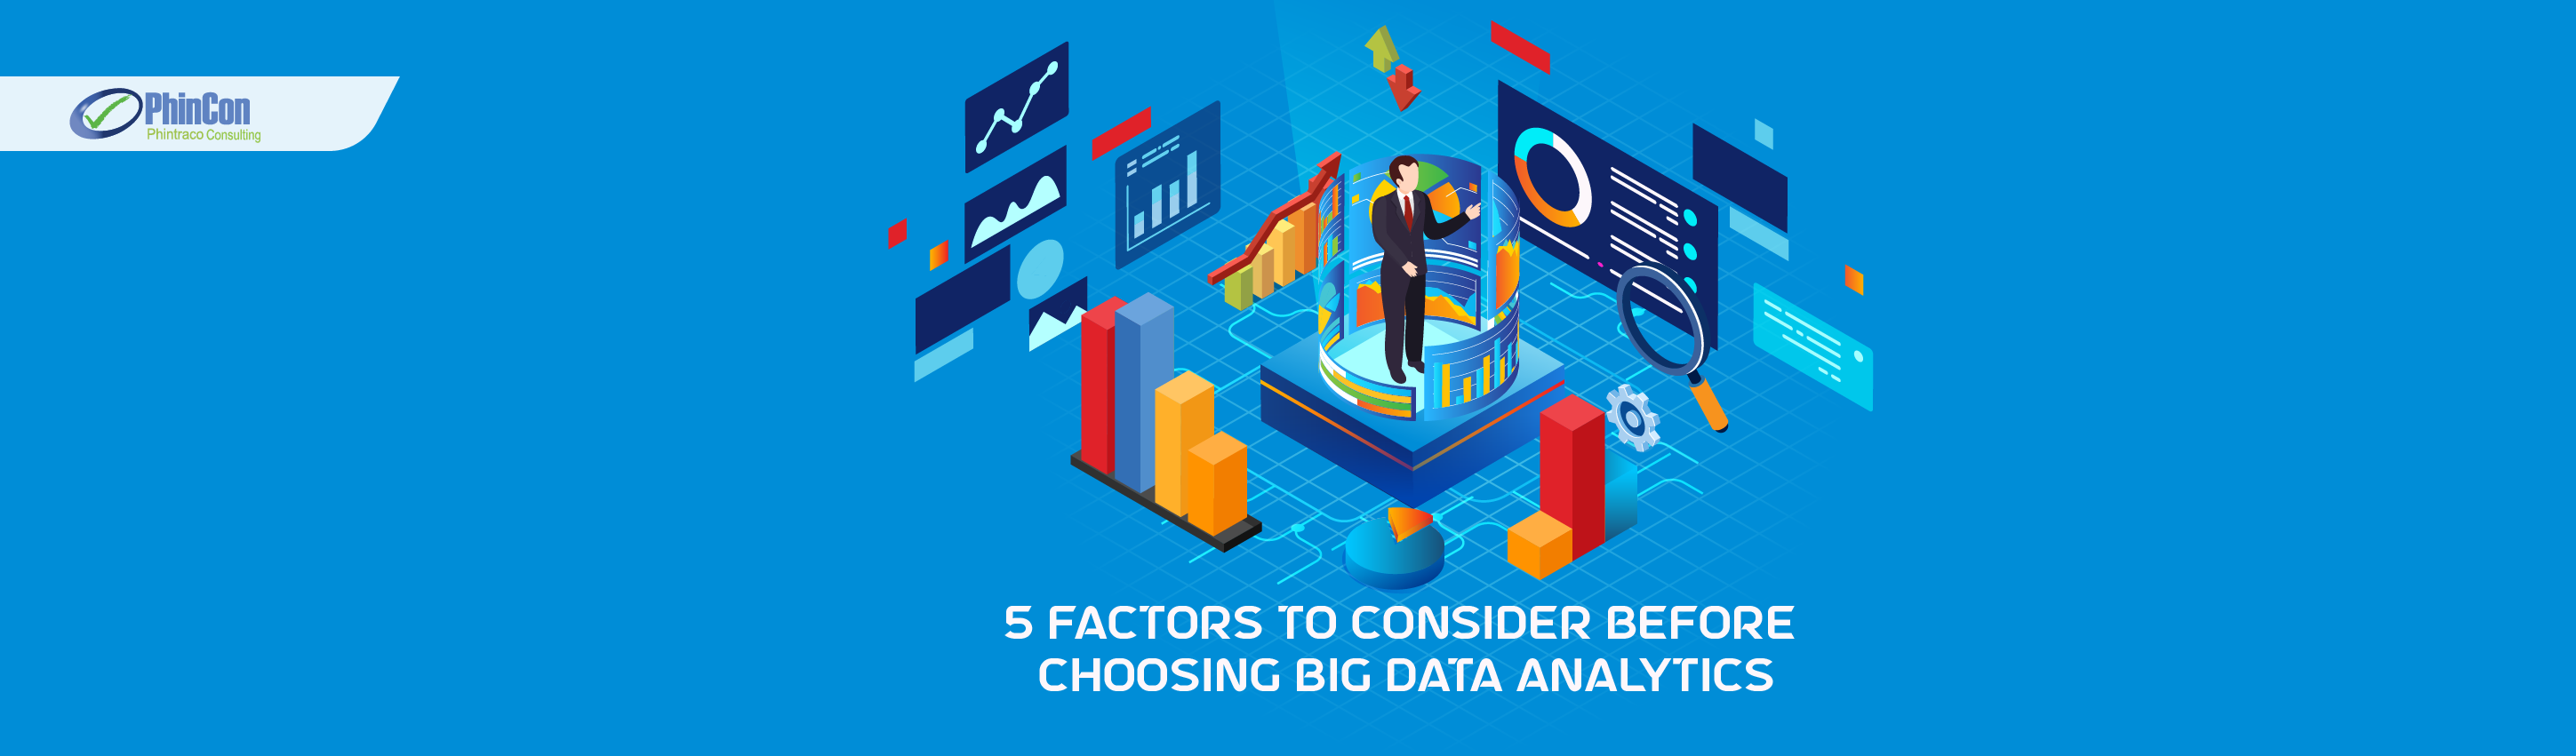 5 Factors to Consider before Choosing Big Data Analytics Solutions